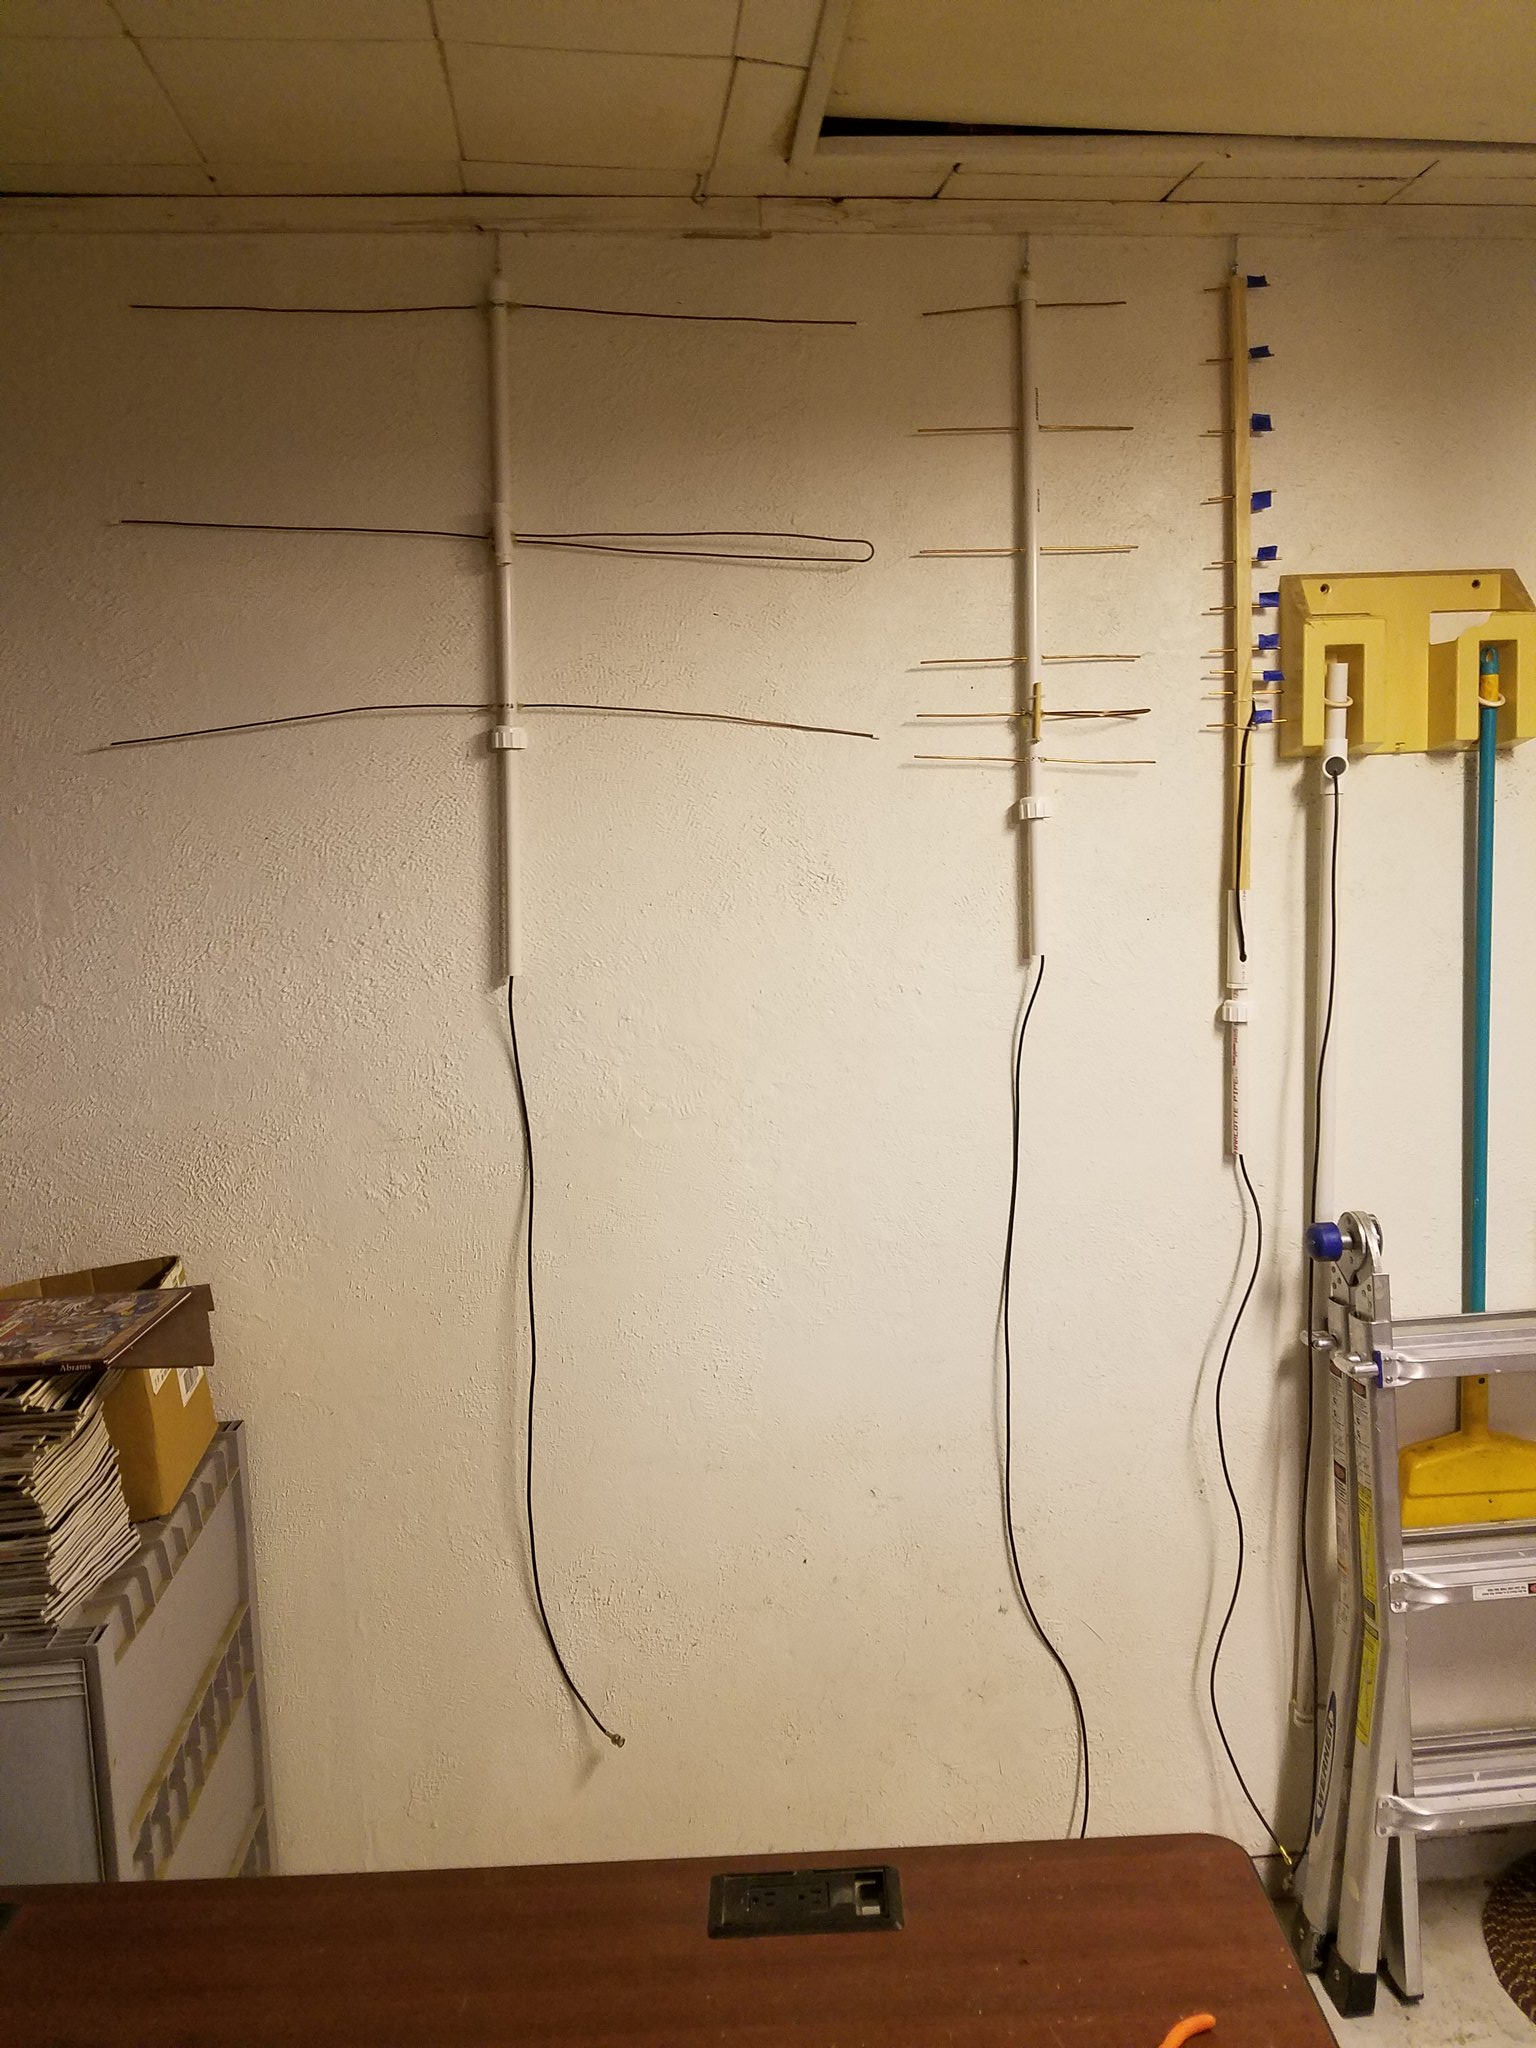 Hangin' up my satellite antennas for now.... In the garage. that is.😉 I put brass screw eyes on the end on each antenna, so tuning shouldn't be affected. Screw hooks in the ceiling, up against the wall, make it easy to store the antennas out of the way when not in use. 👍 https://t.co/6NTaJeaMg2